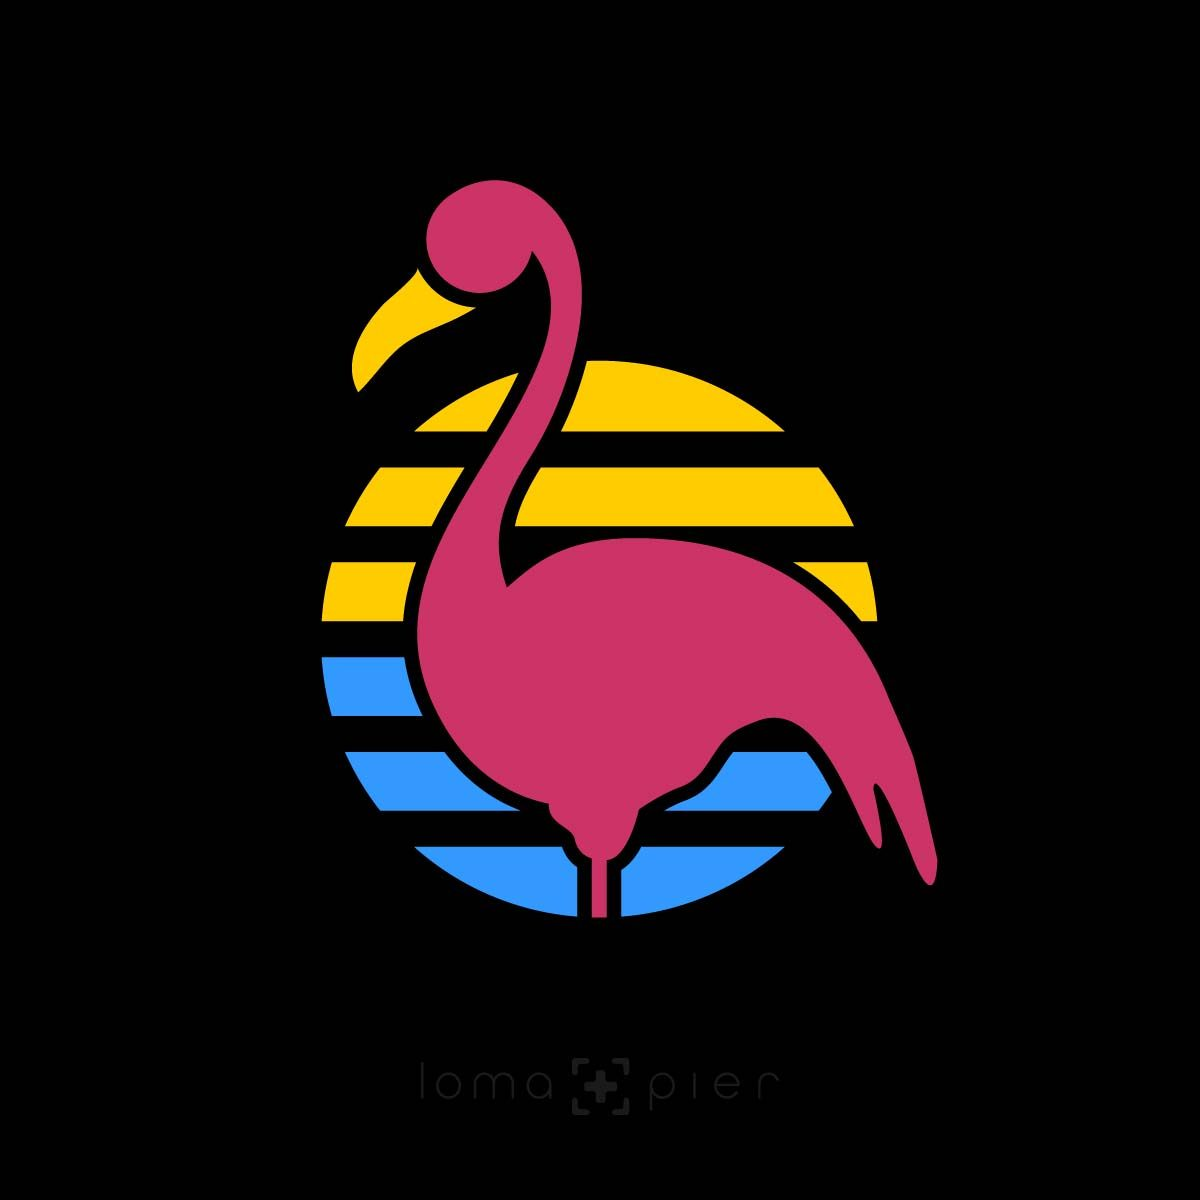 FLAMINGO icon in the loma+pier hat store